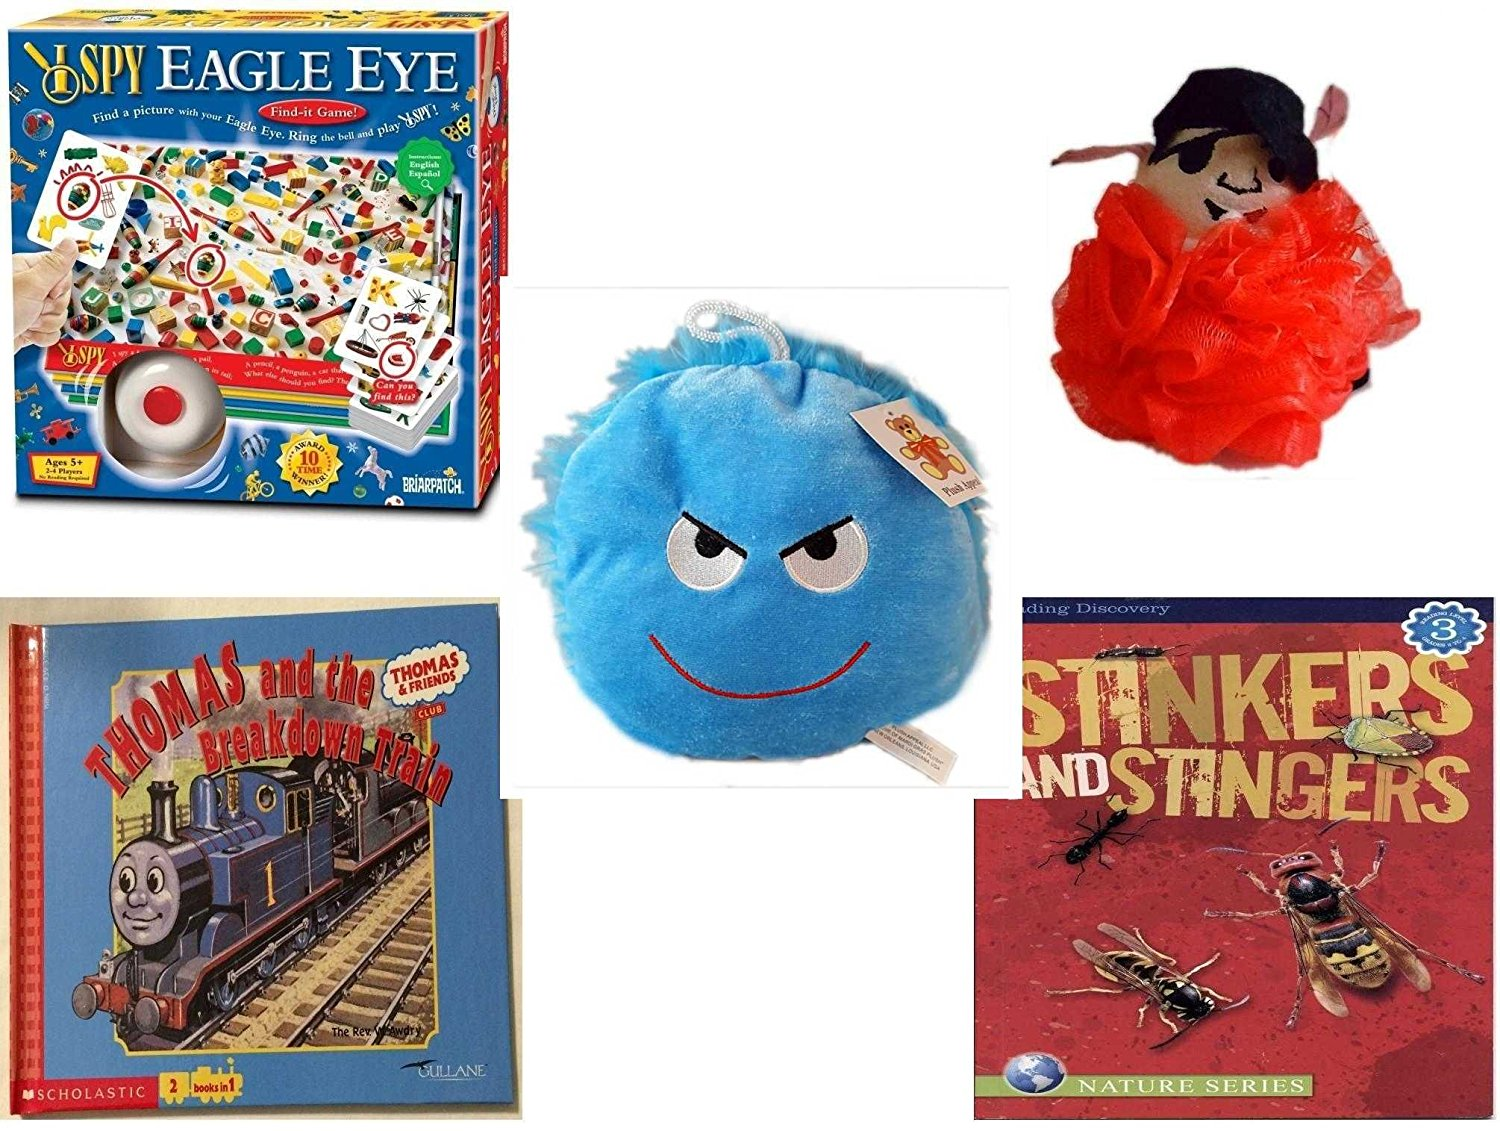 "Children's Gift Bundle - Ages 3-5 [5 Piece] - I SPY Eagle Eye Game - The Wiggles Captain Feathersword Net Bath Sponge - Plush Appeal Bright Blue Mischievous Face Plush 7"" - Thomas and the Breakdown"